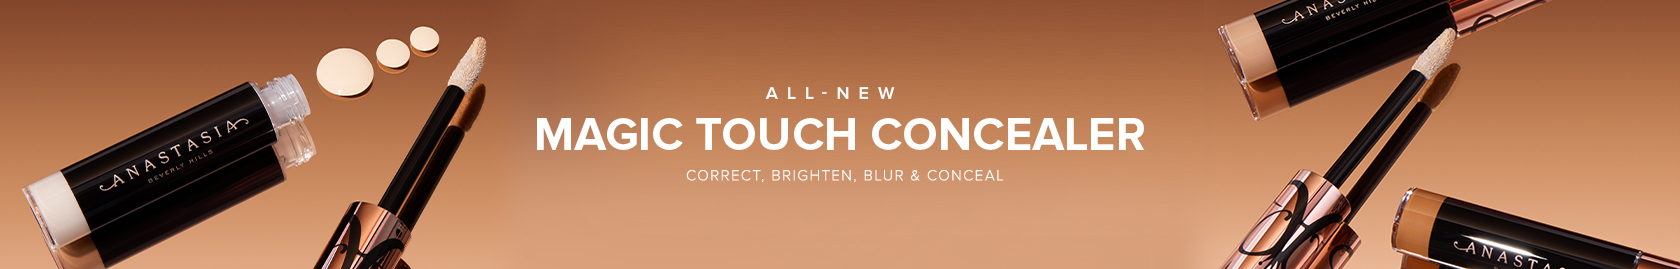 Magic Touch Concealer - Correct, Brighten, Blur and Conceal